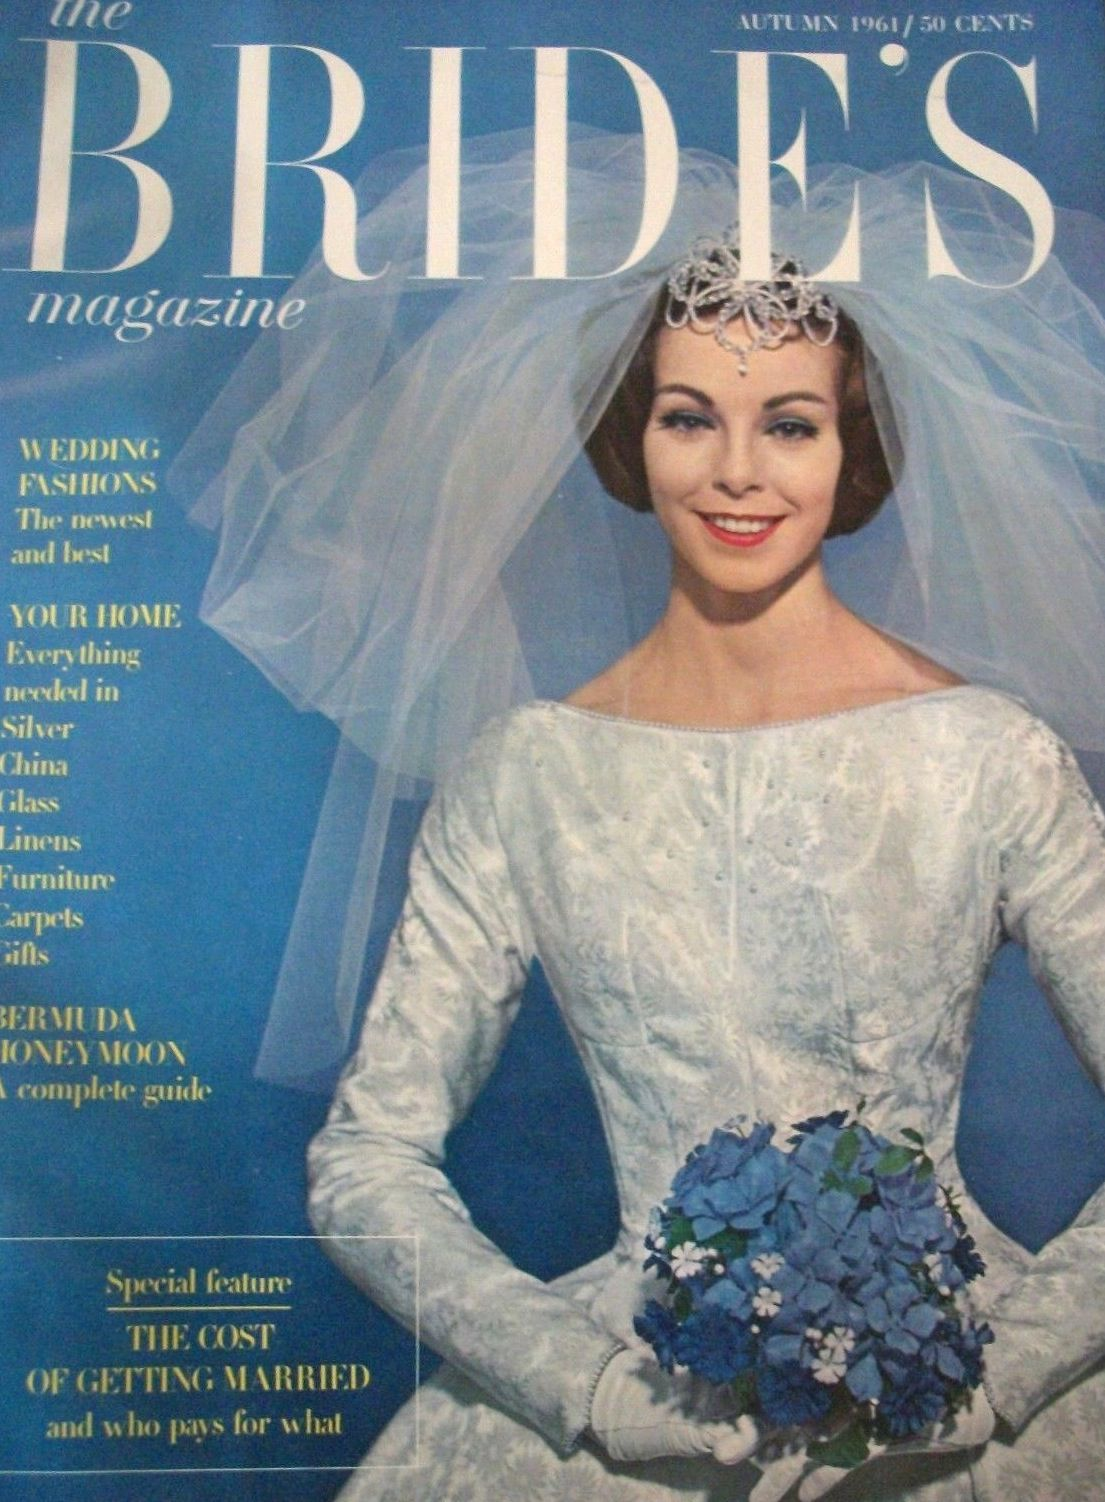 The Bride S Magazine Autumn 1961